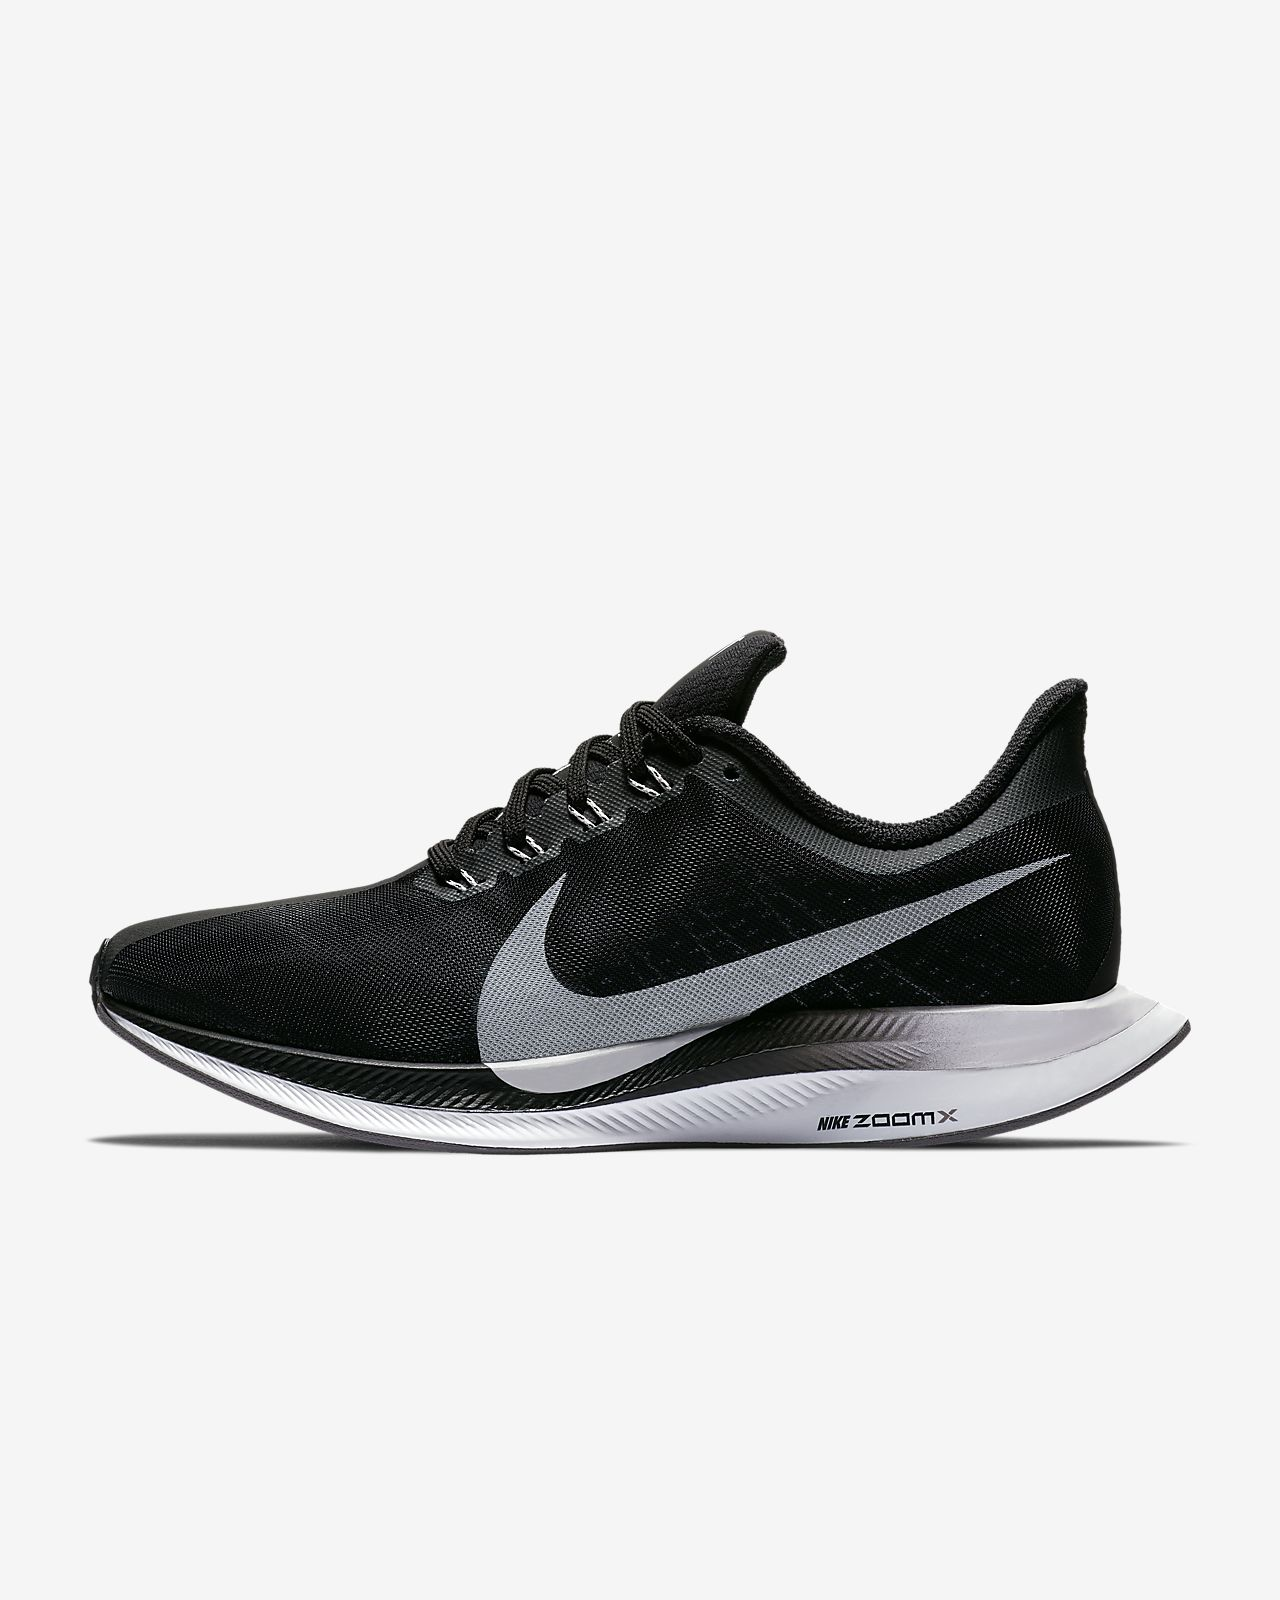 30ee17a3fc4ad Chaussure de running Nike Zoom Pegasus Turbo pour Femme. Nike.com FR